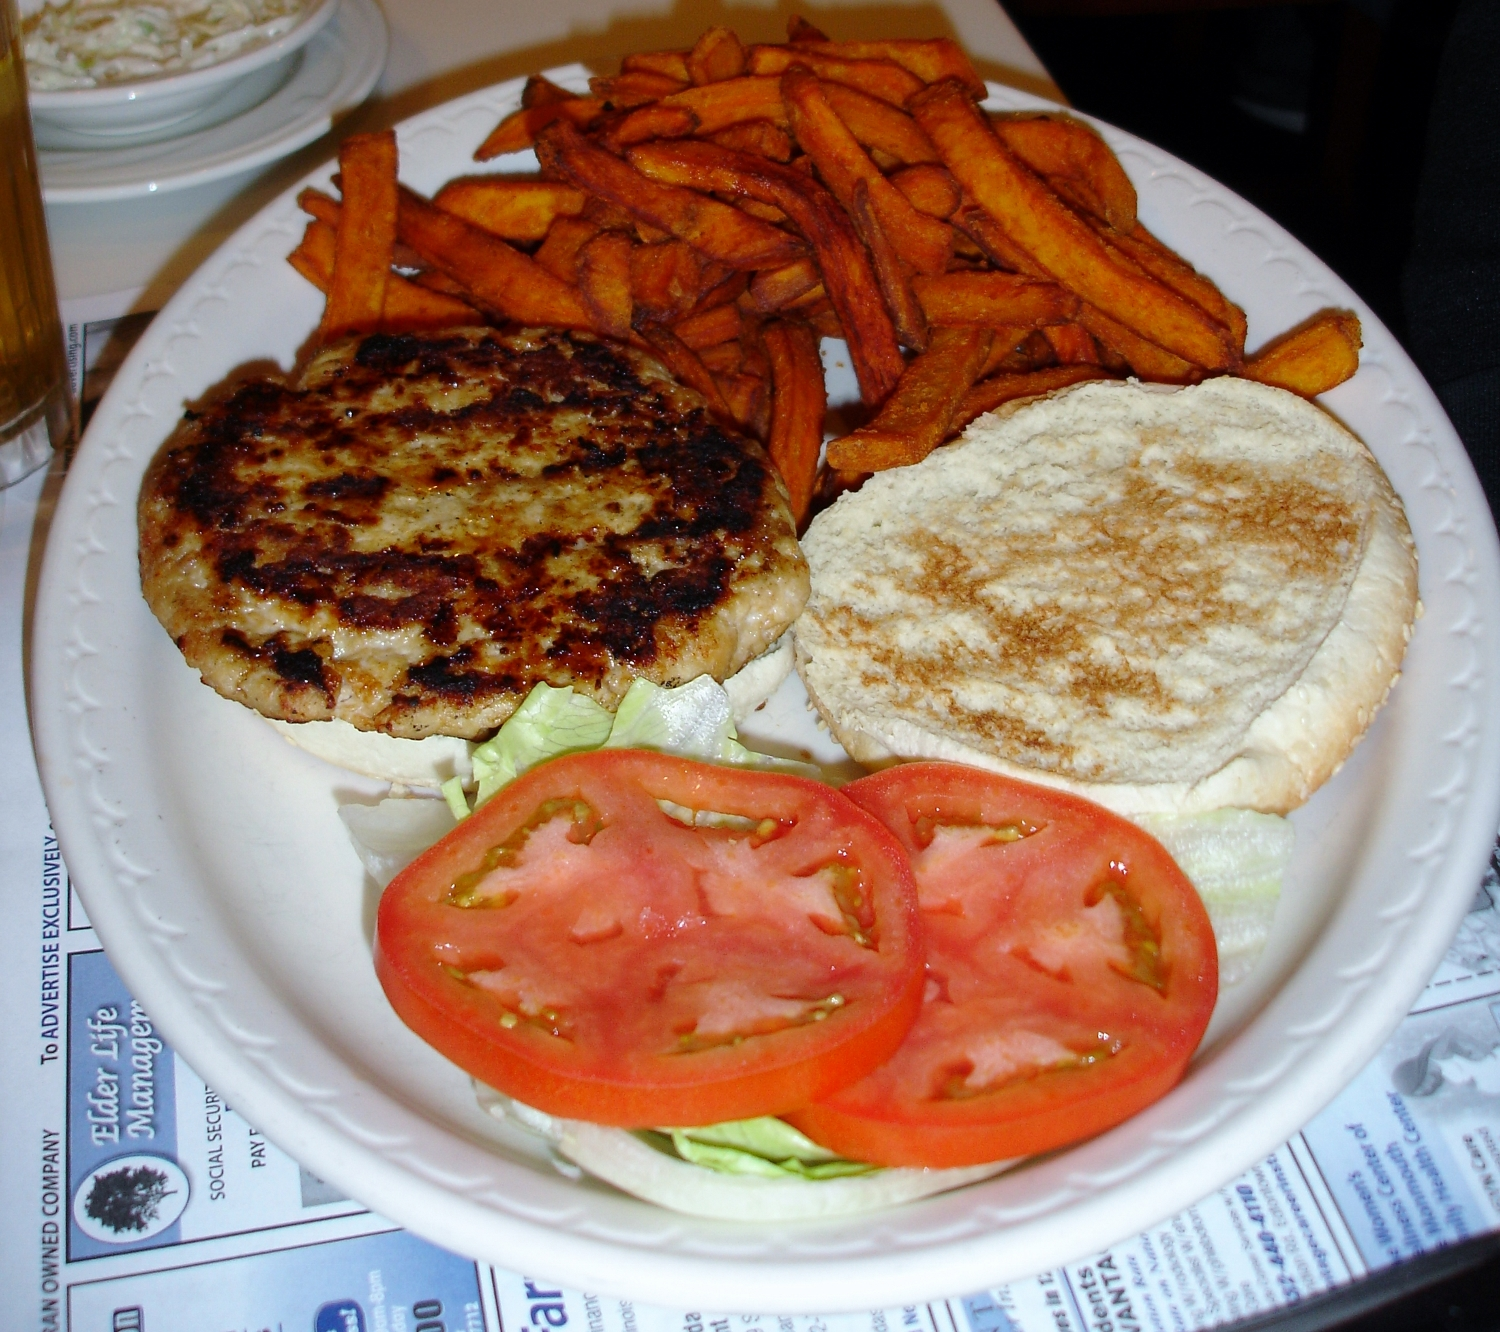 A turkey burger with the dollar surcharge sweet potato fries was fine, the sort of thing you can depend on in a diner.